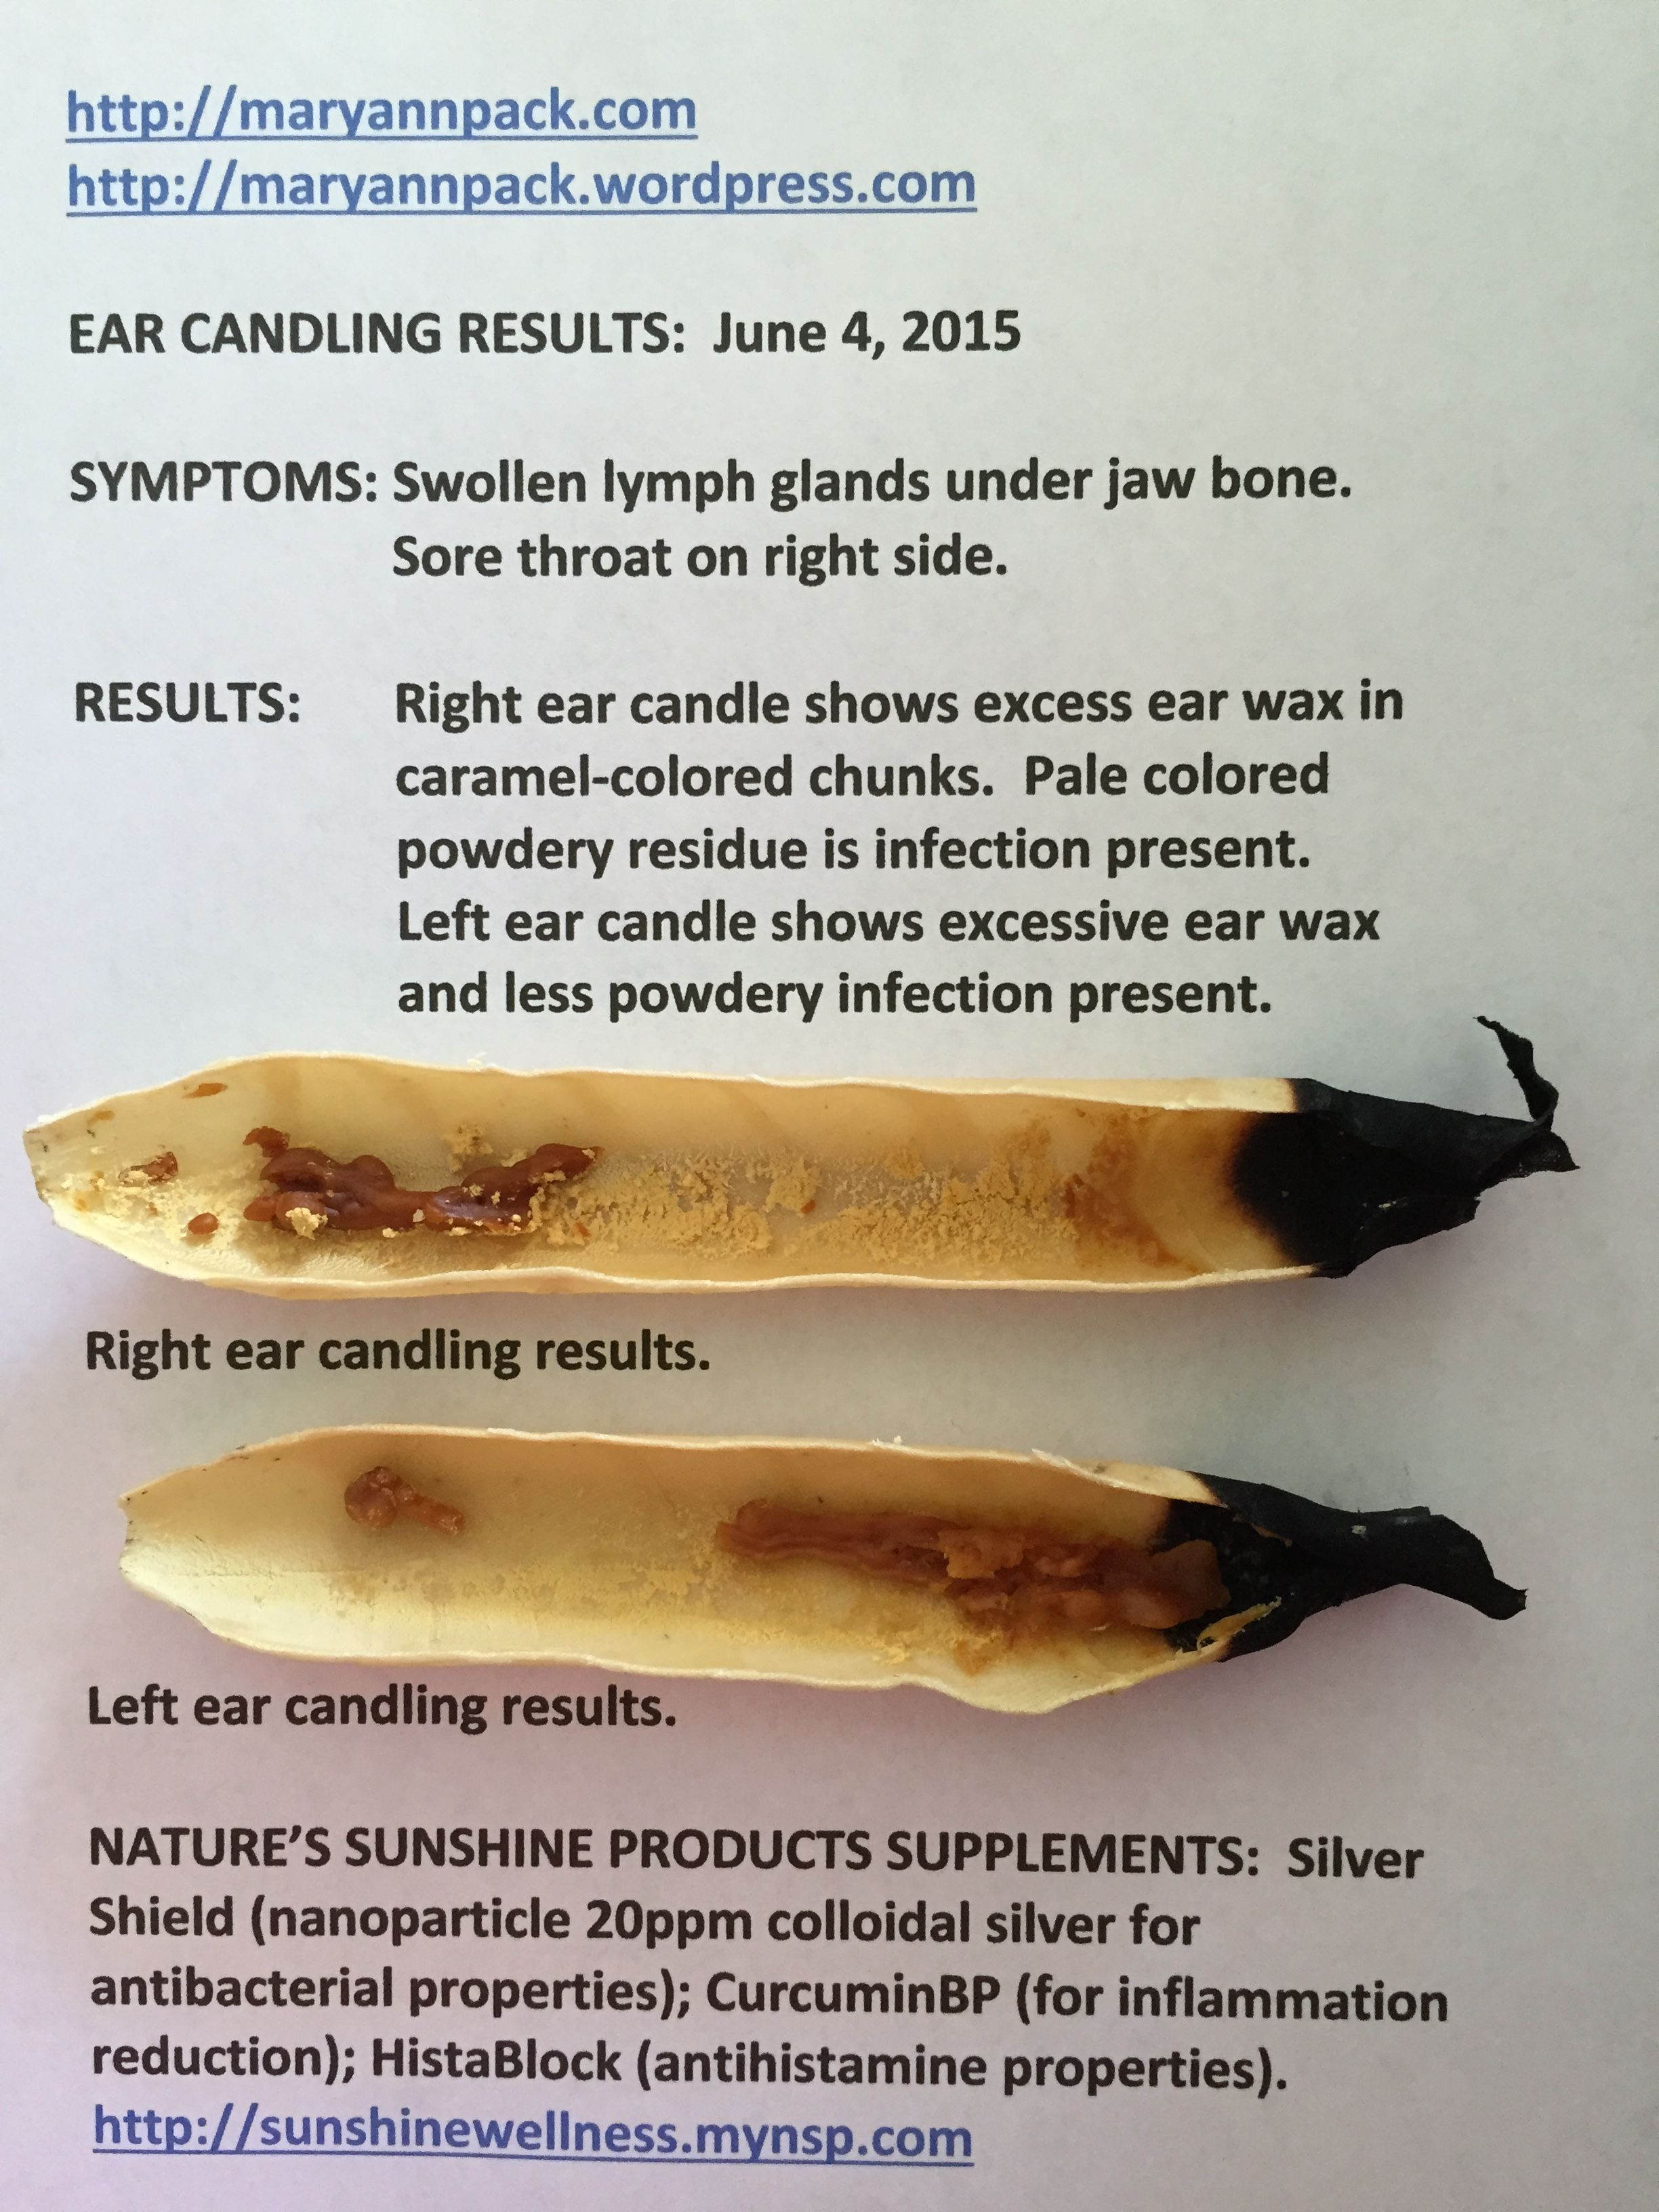 If You Are Not Familiar With Ear Candling Rest Assured Many